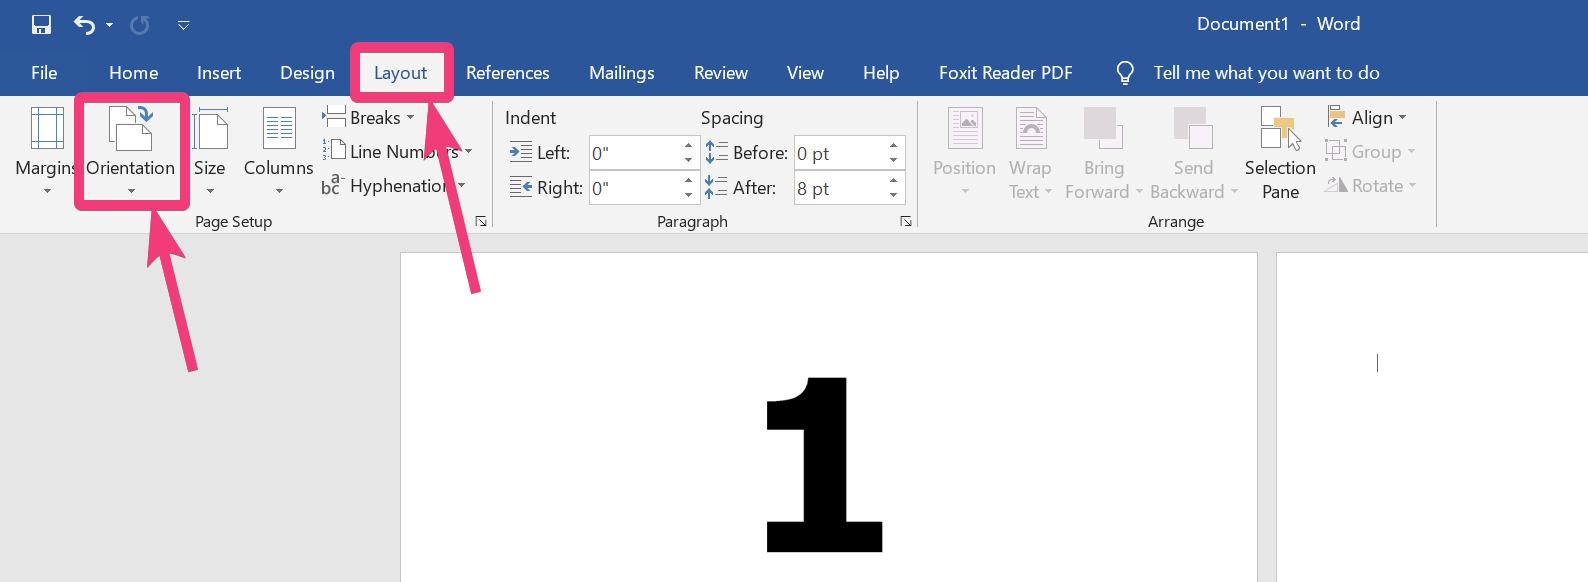 Merge images to a single PDF 100